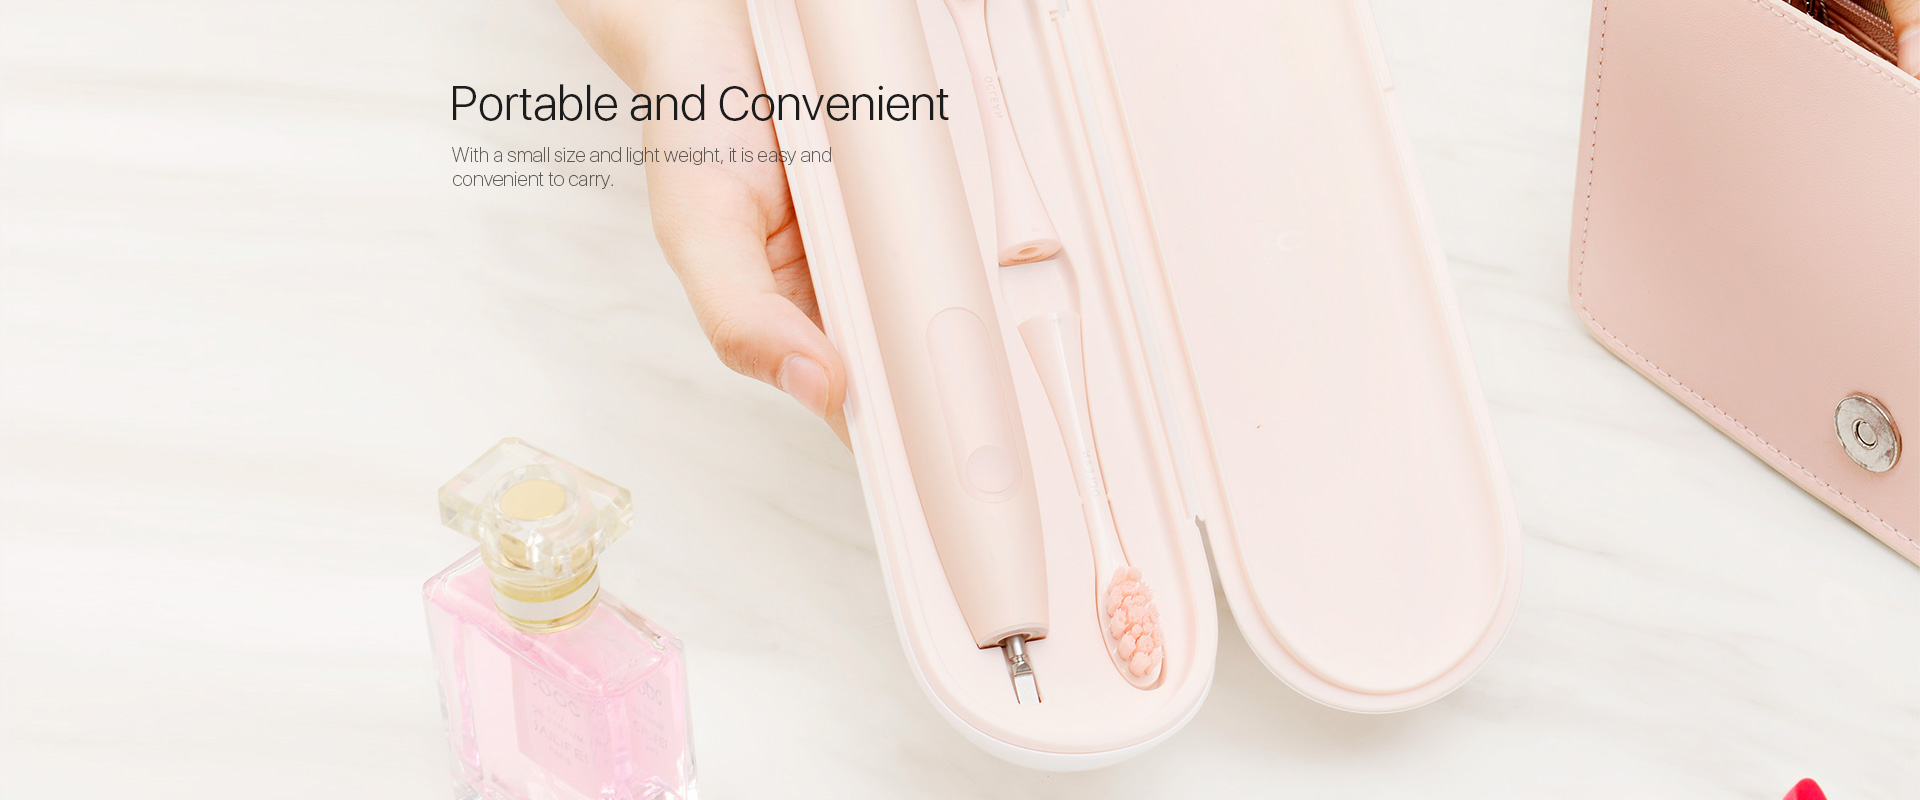 portable and convenient ,small size and light weight